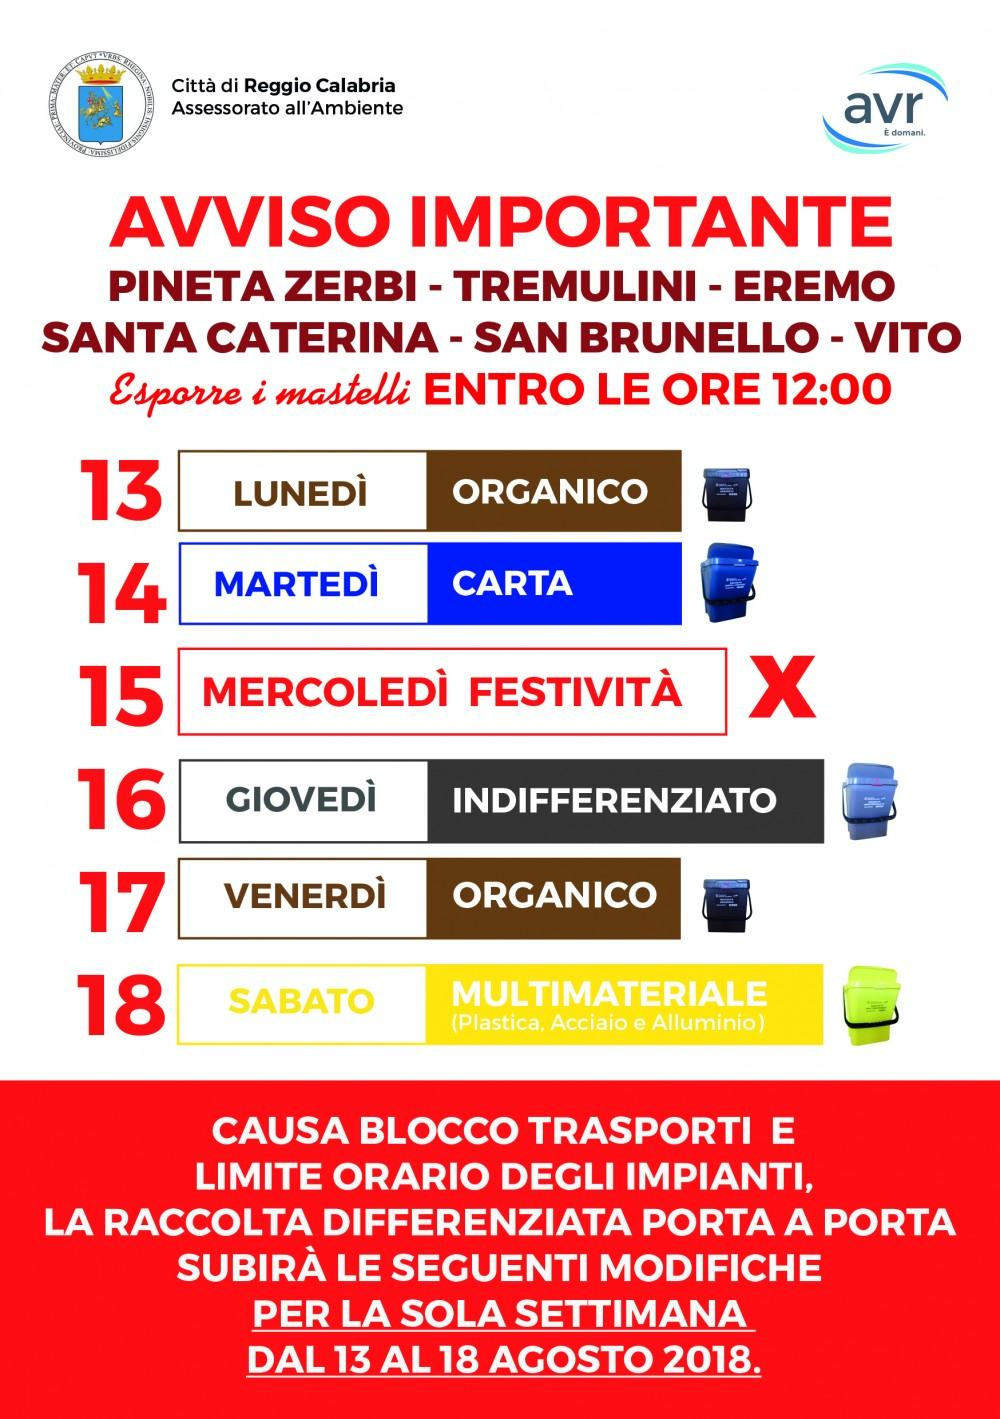 Calendario Raccolta Differenziata Reggio Calabria.Raccolta Differenziata Avviso Modifica Calendario Per La